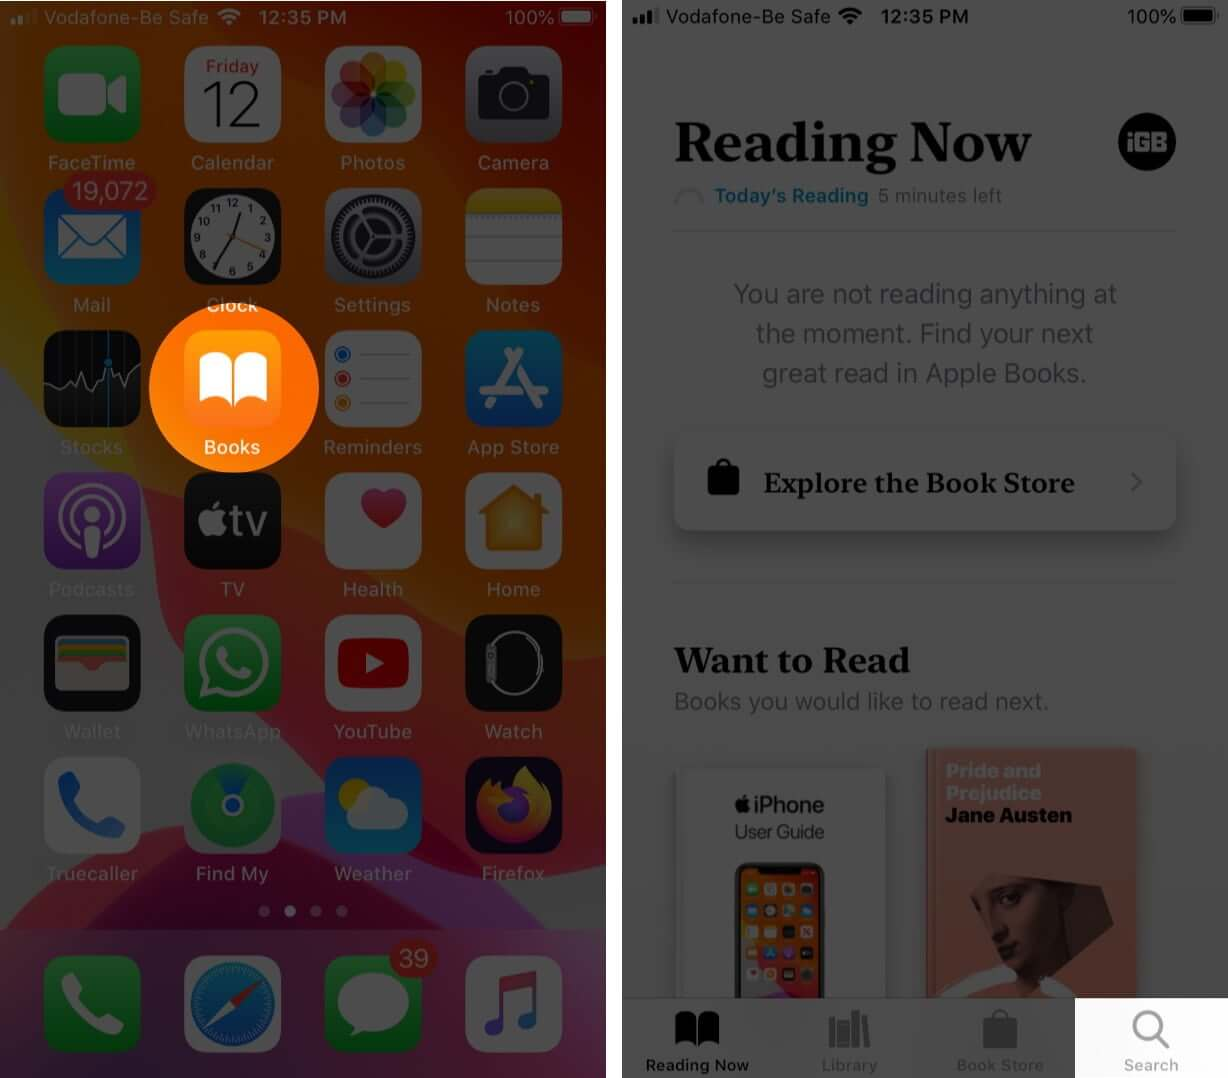 open books app and tap on search from bottom of the screen on iphone